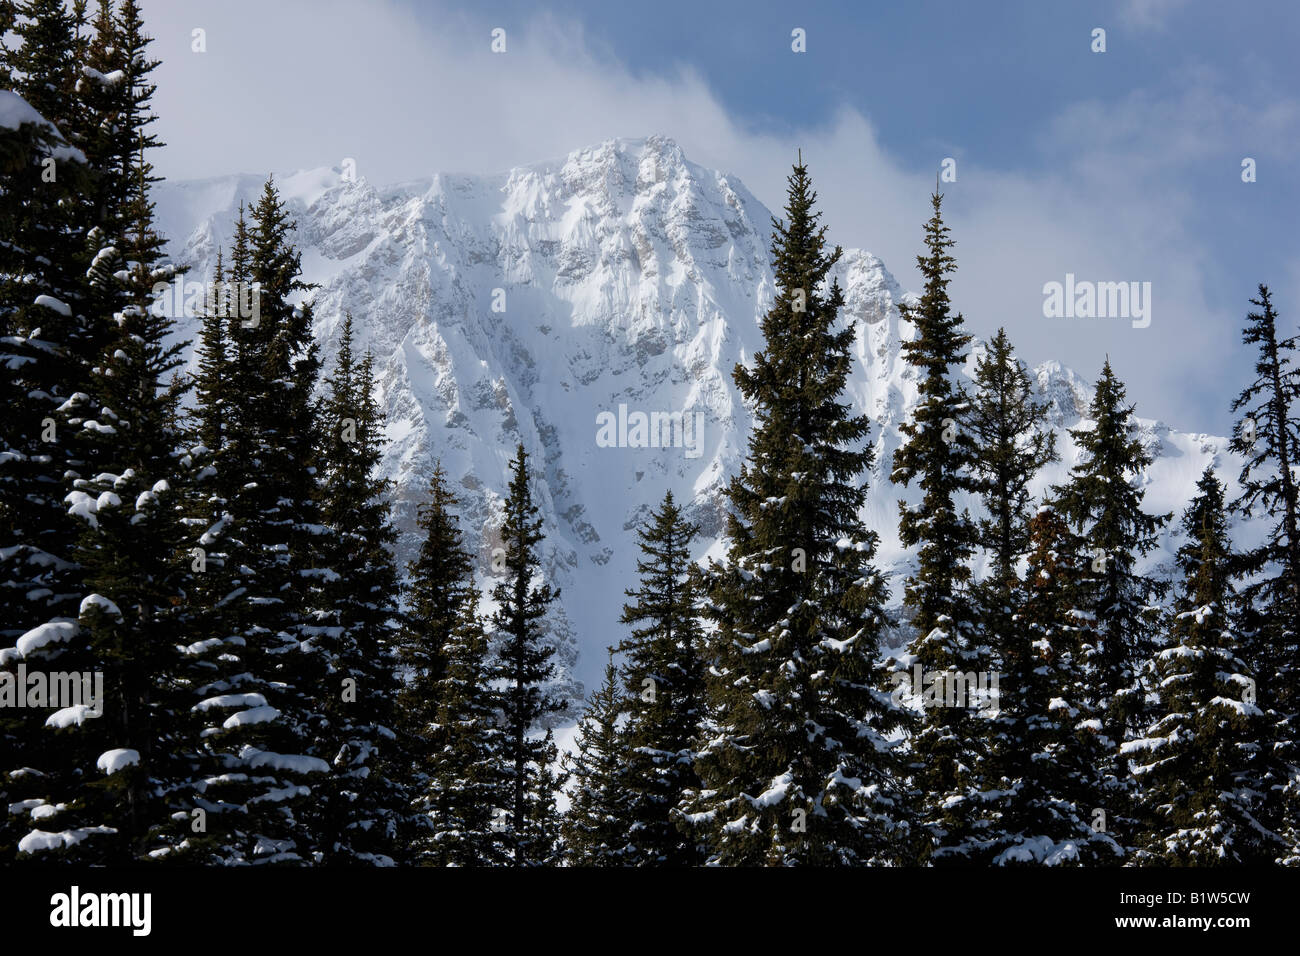 Canada Alberta Banff National Park Icefield parkway mountains viewed over pine trees - Stock Image